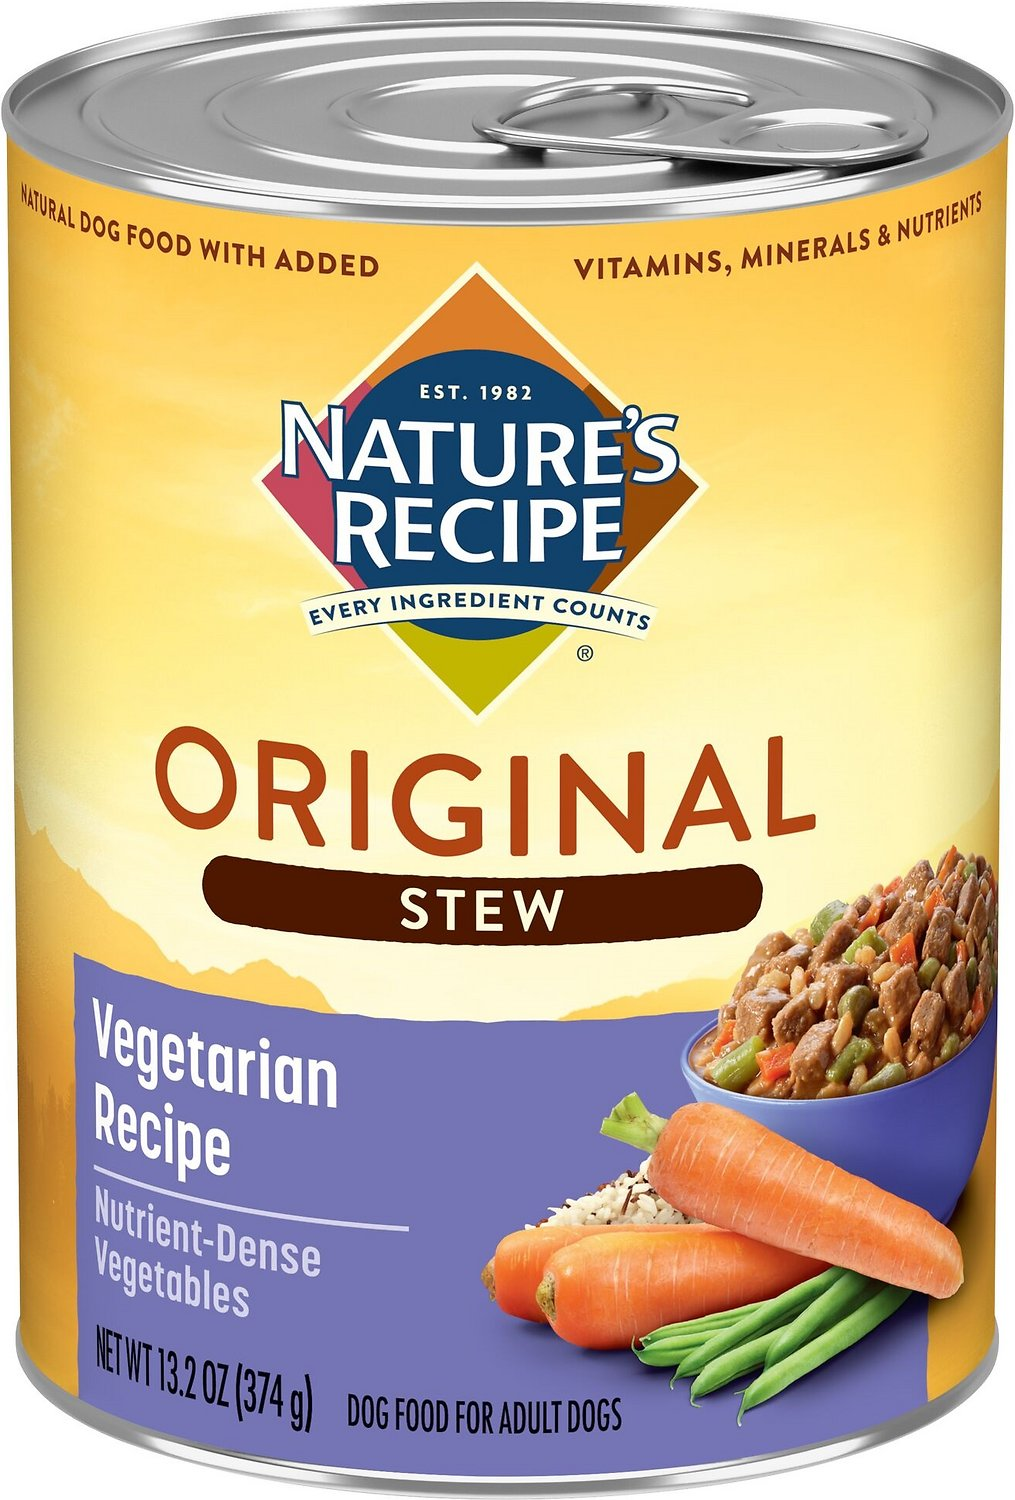 Natures recipe healthy skin vegetarian recipe cuts in gravy stew video forumfinder Images